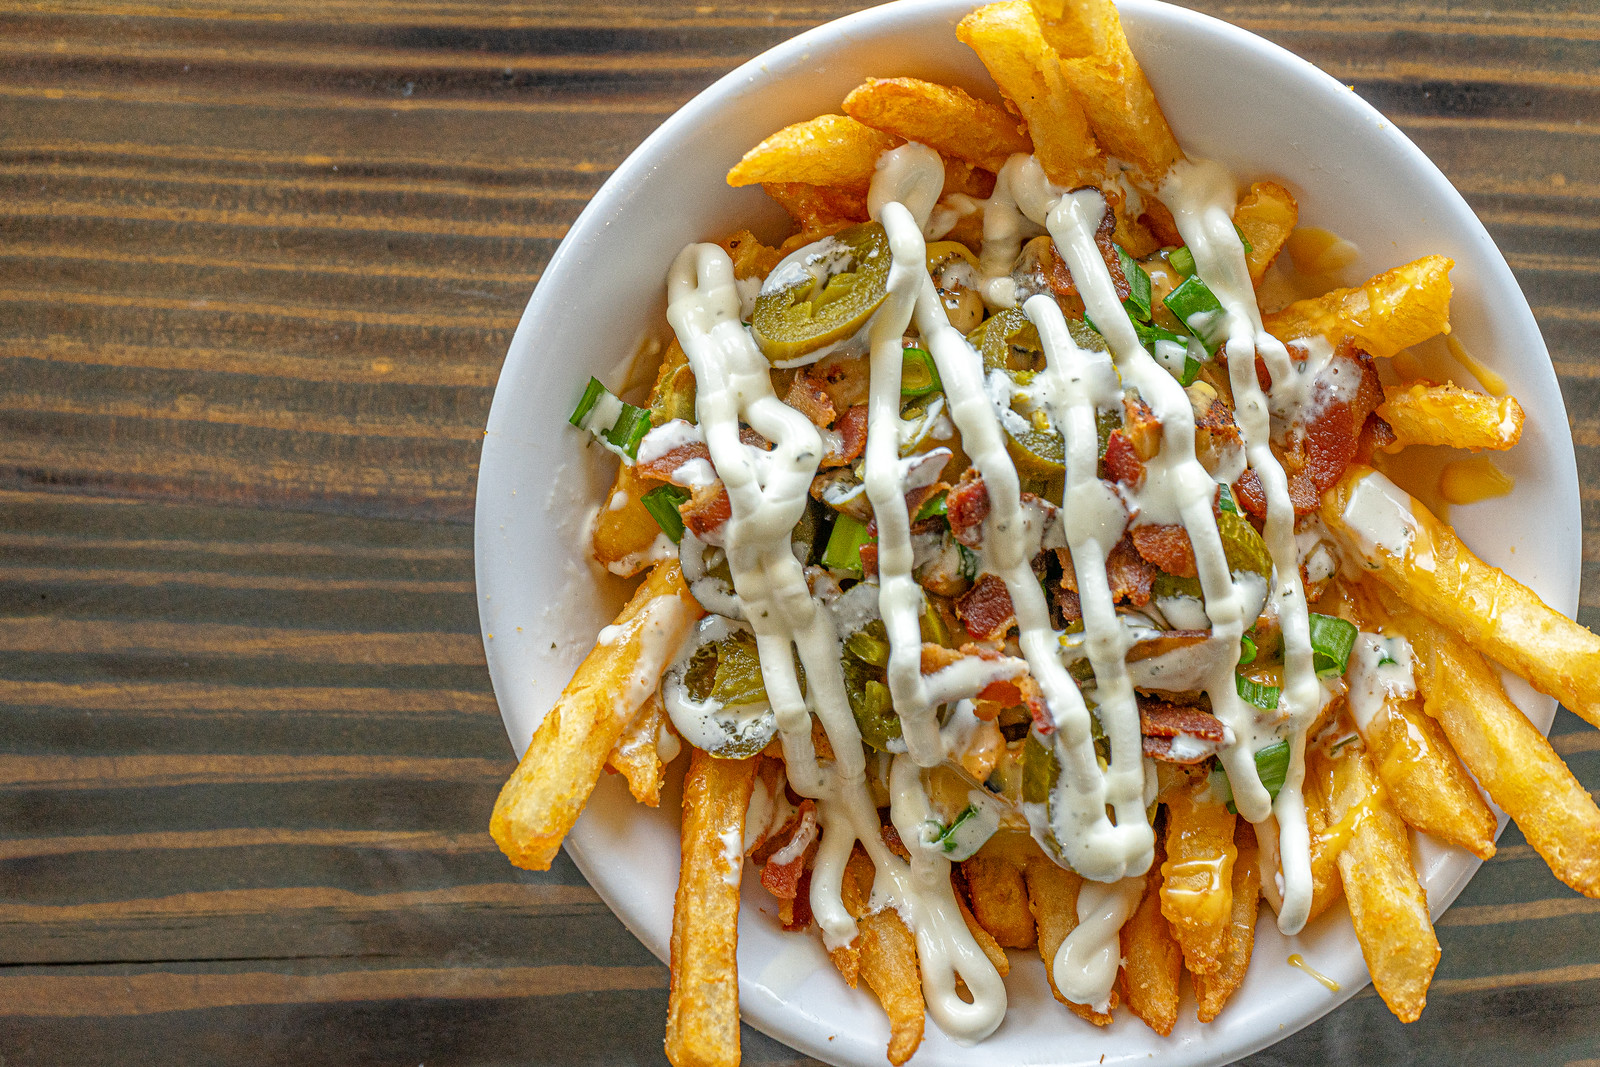 French Fries - Battered French fries cooked to a golden brown. Served hot and made to order! Add ¢50